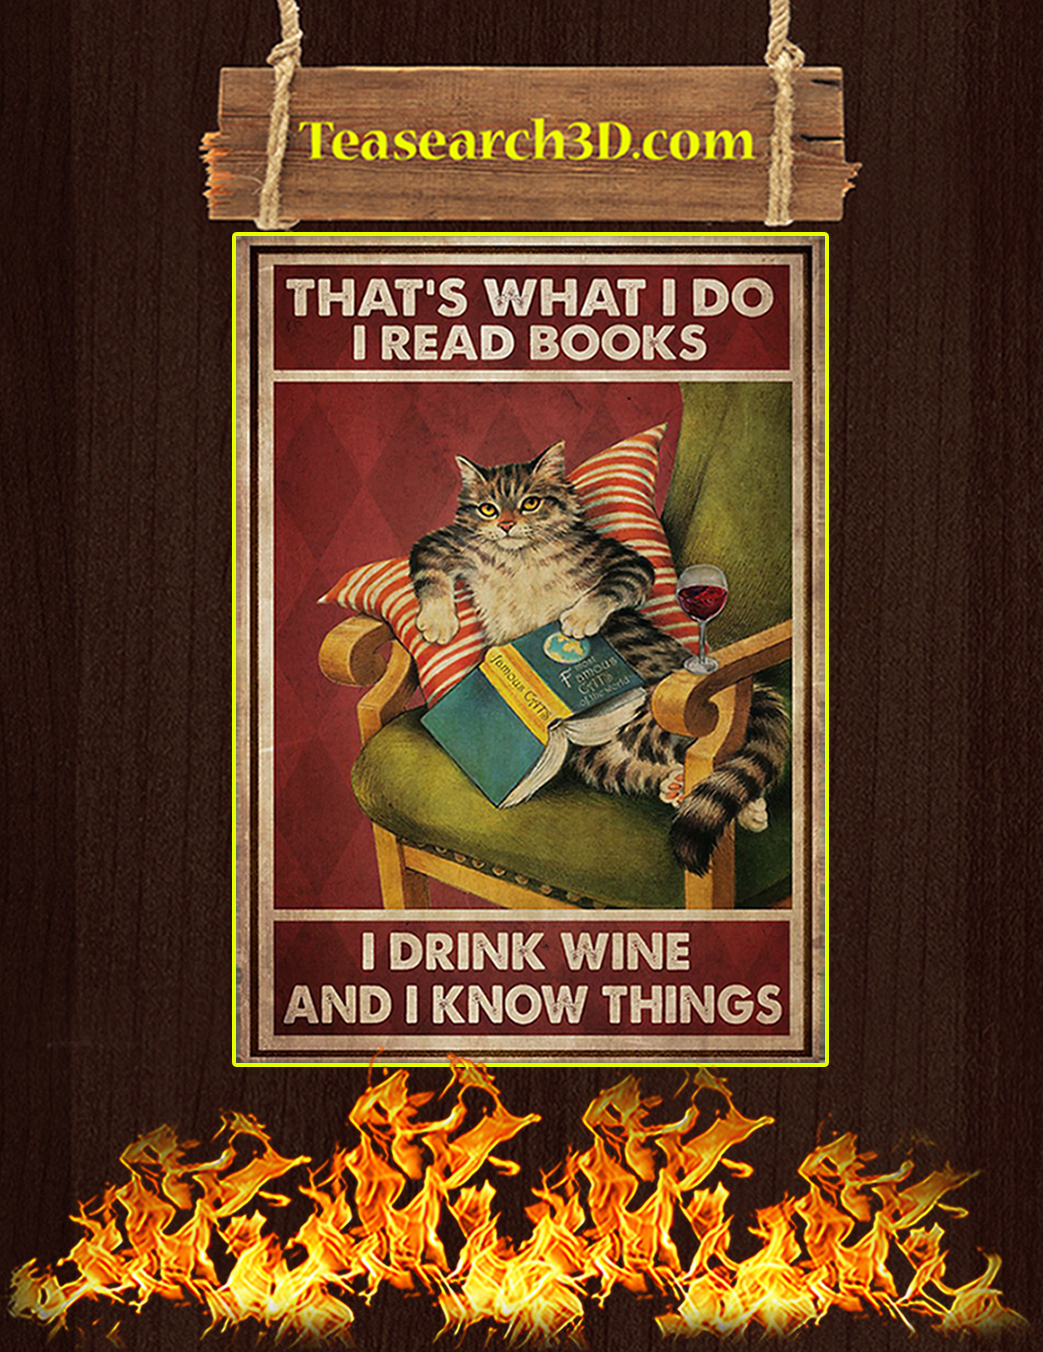 That's what I do I read books I drink wine and I know things cat poster A1